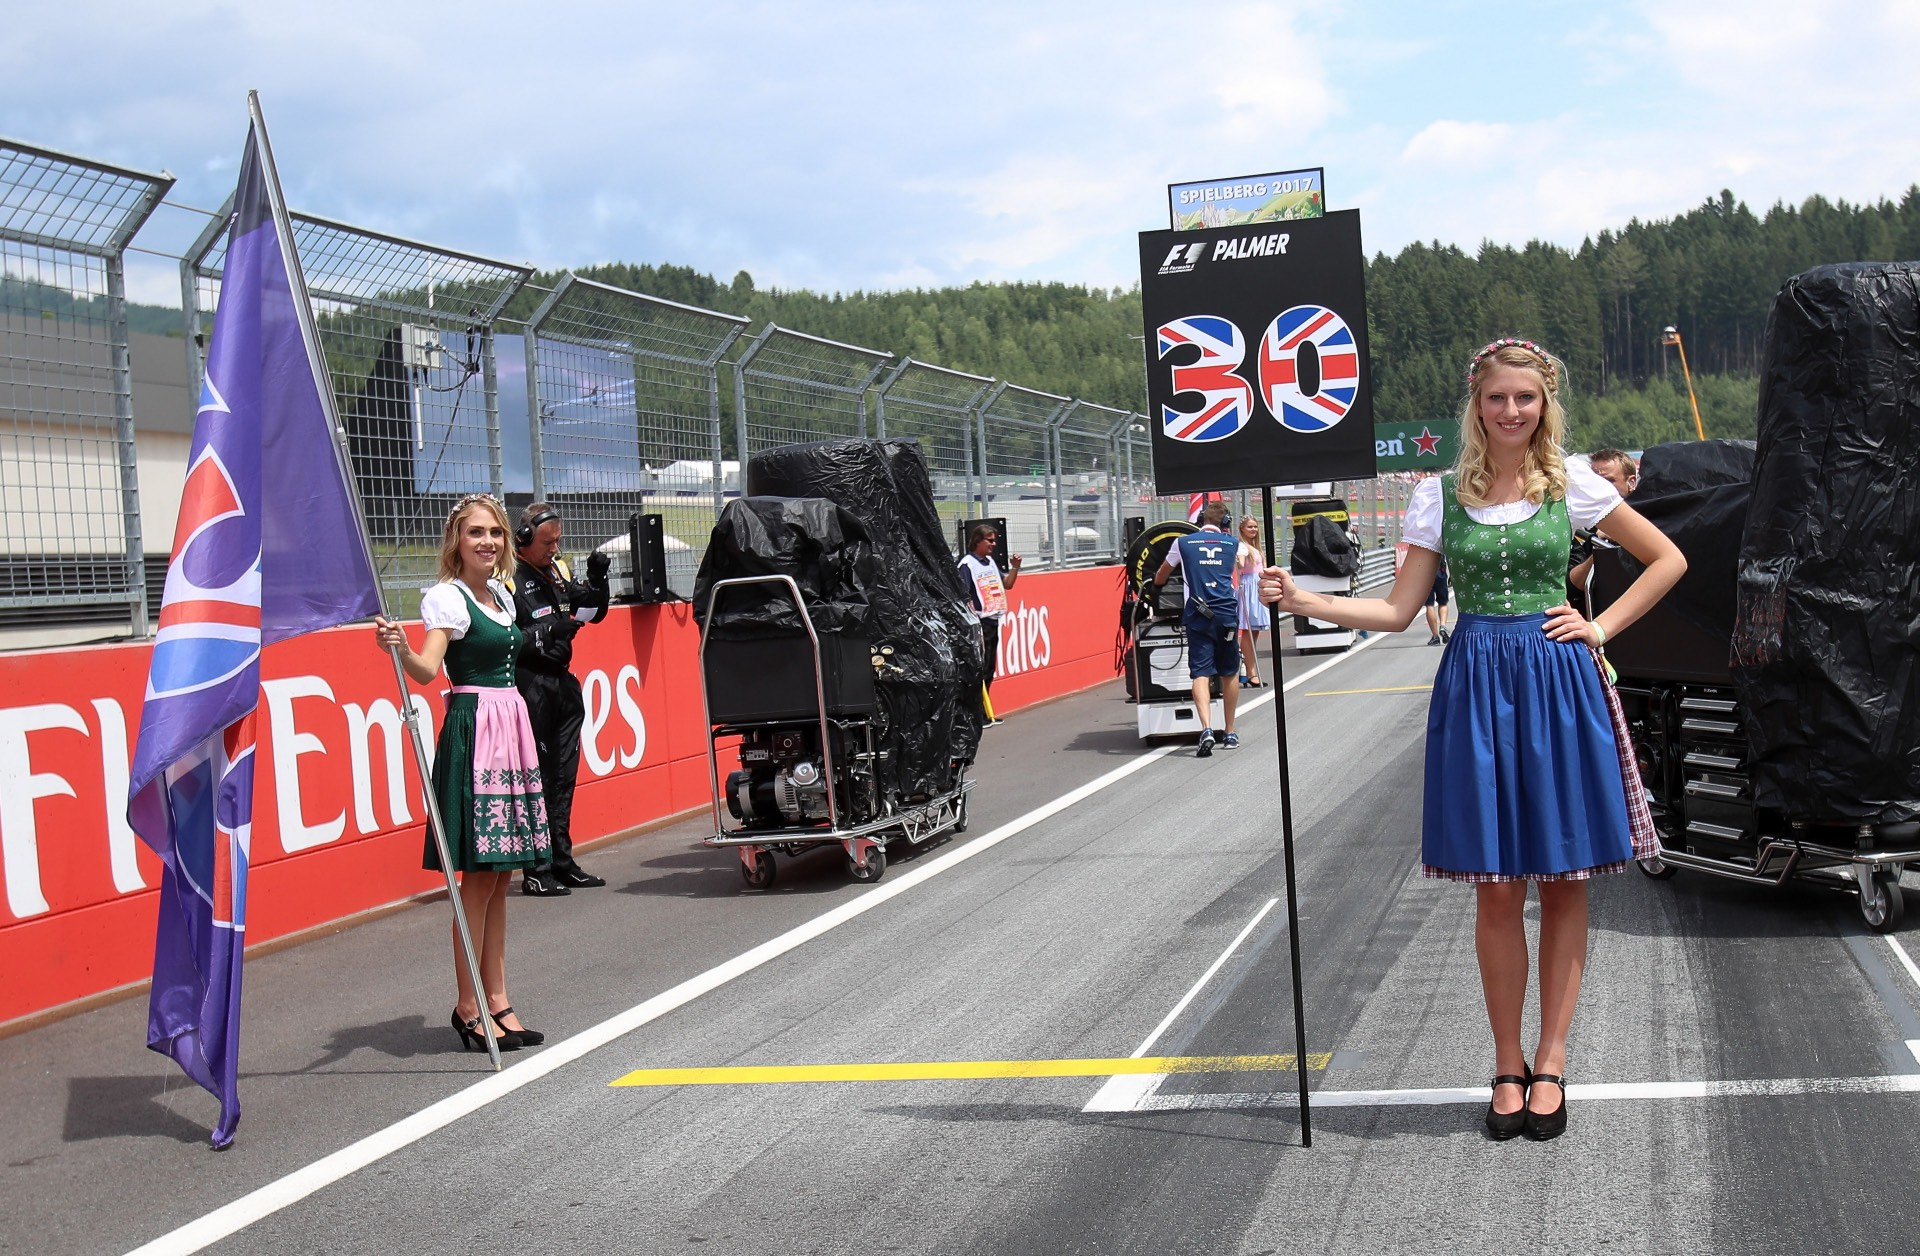 FORMULA 1 - GP of Austria 2017